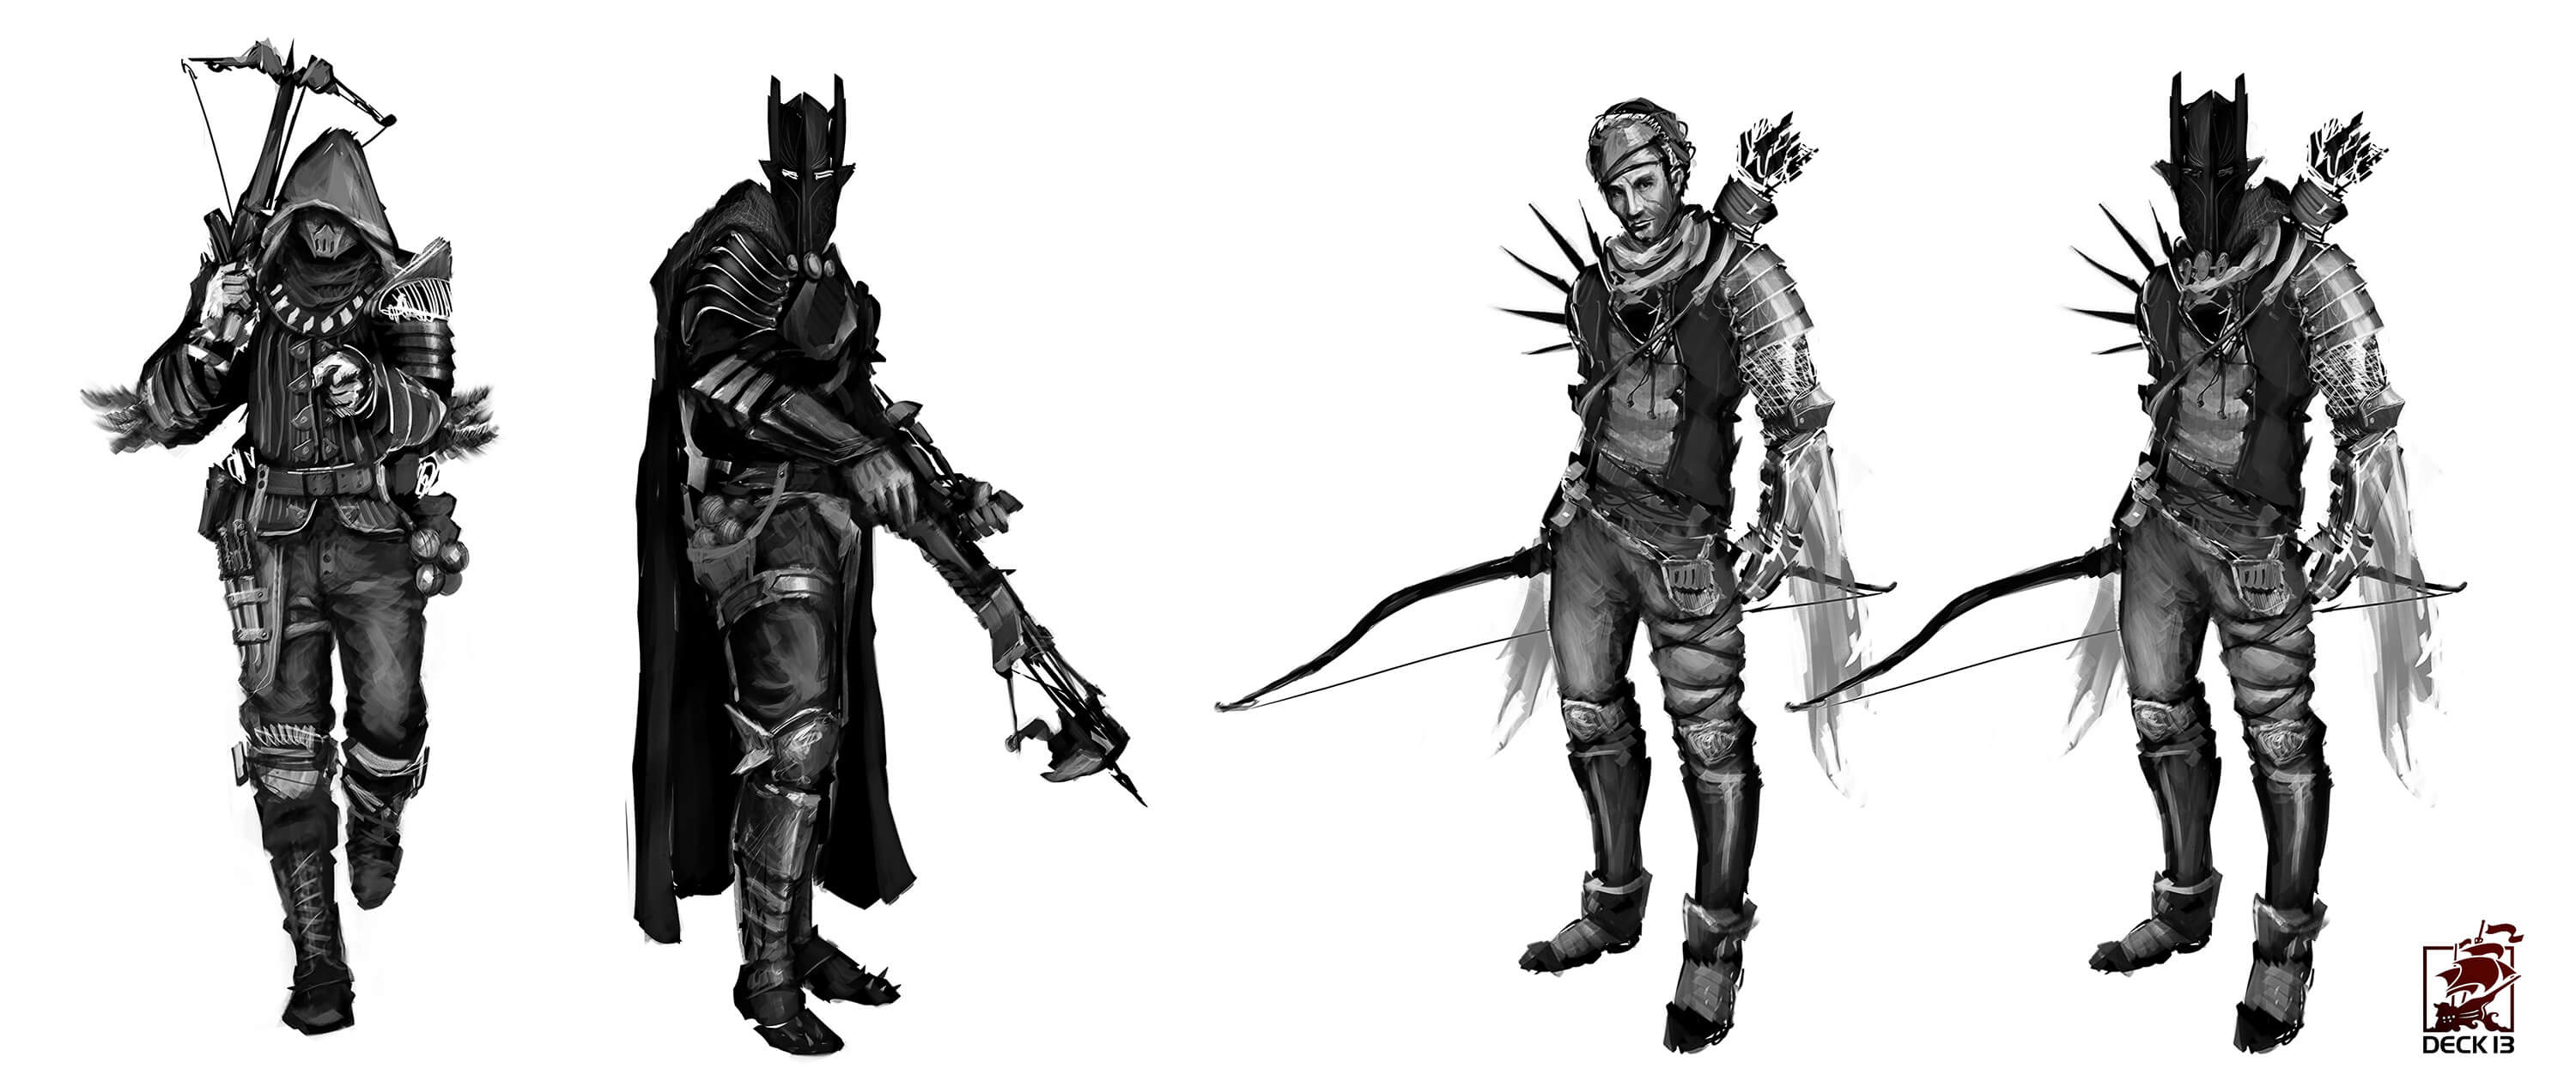 Dead-god-deck13-felix-botho-haas-concept-art-SC_class_assassin003